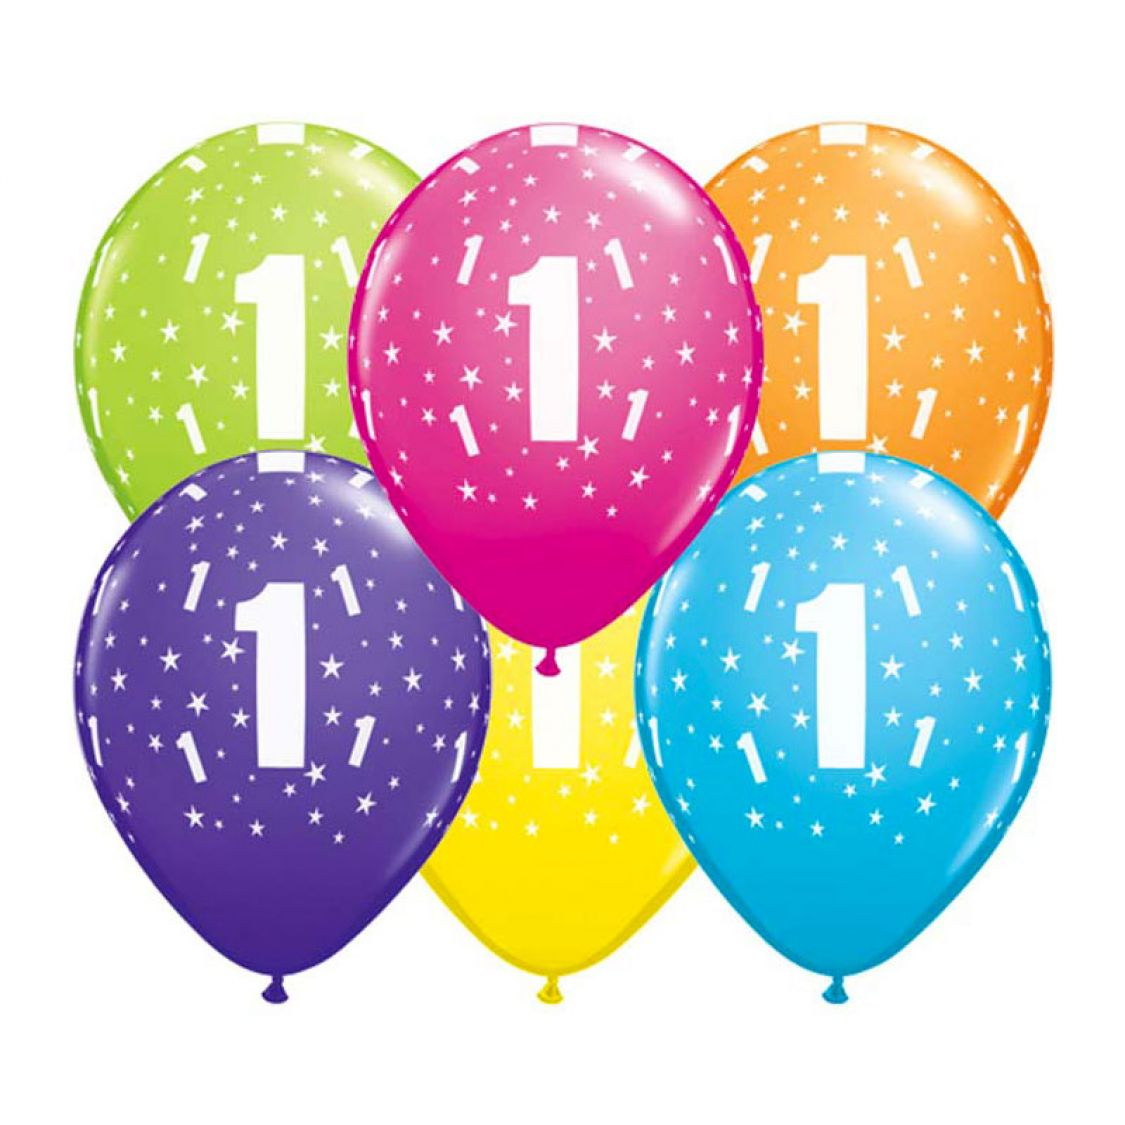 Ballon qualatex 1 an assortiment tropical - Image ballon anniversaire ...